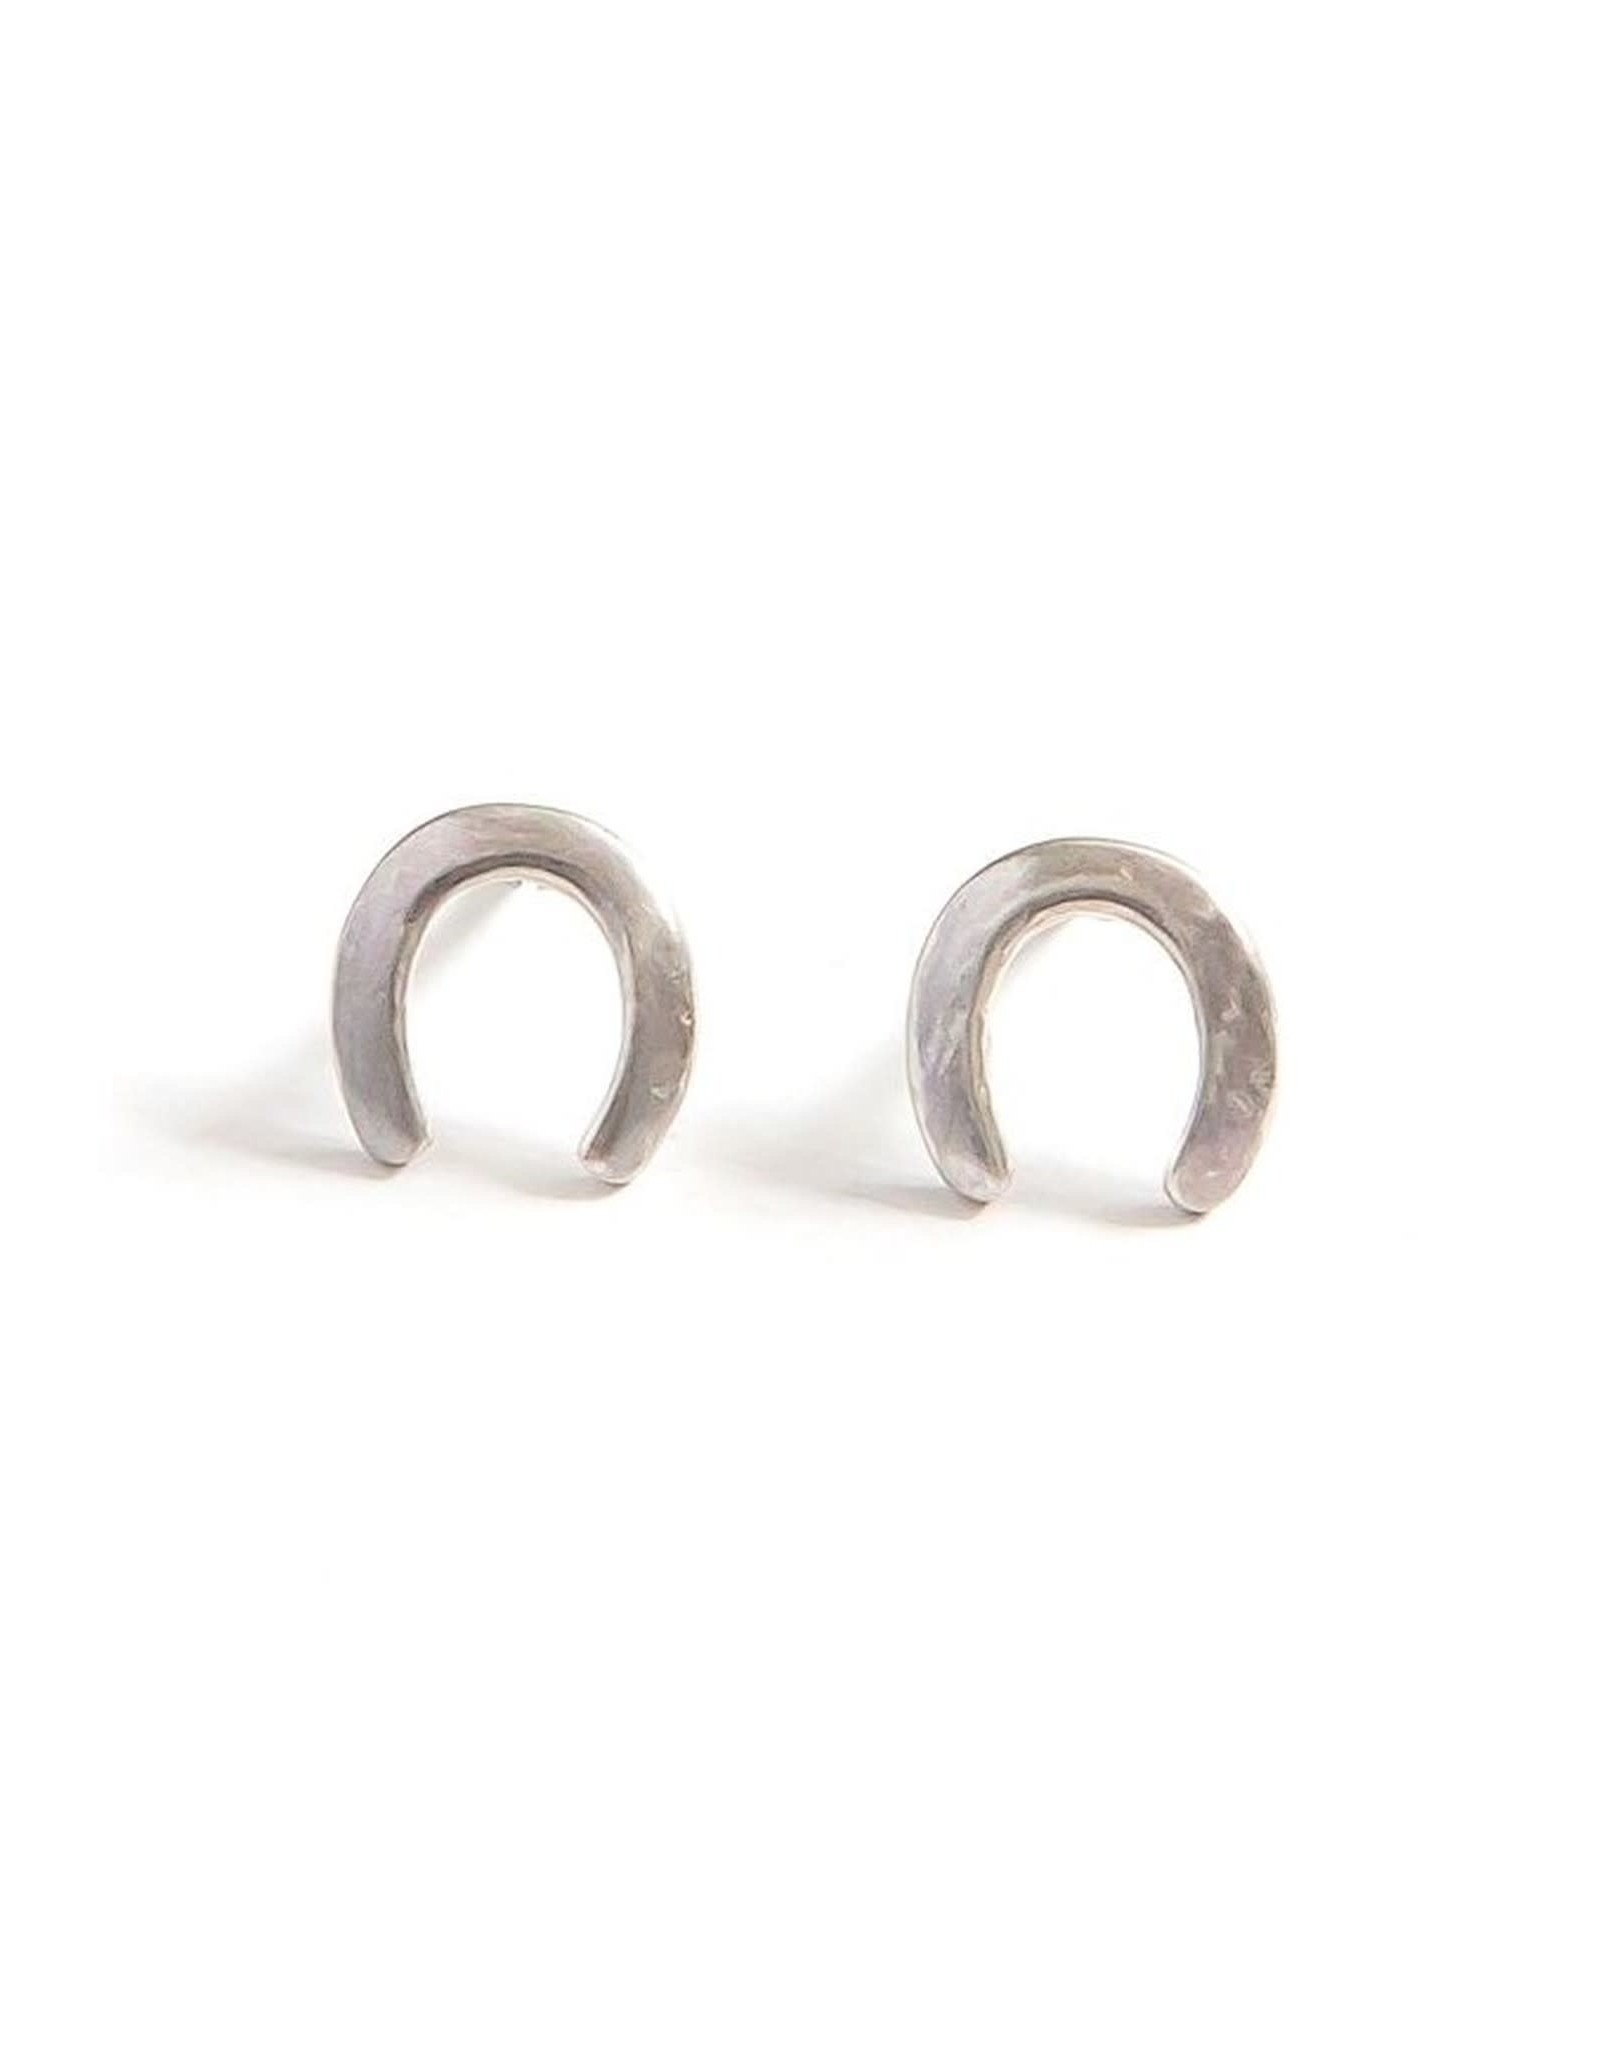 Waning Crescent Sterling Stud Earrings